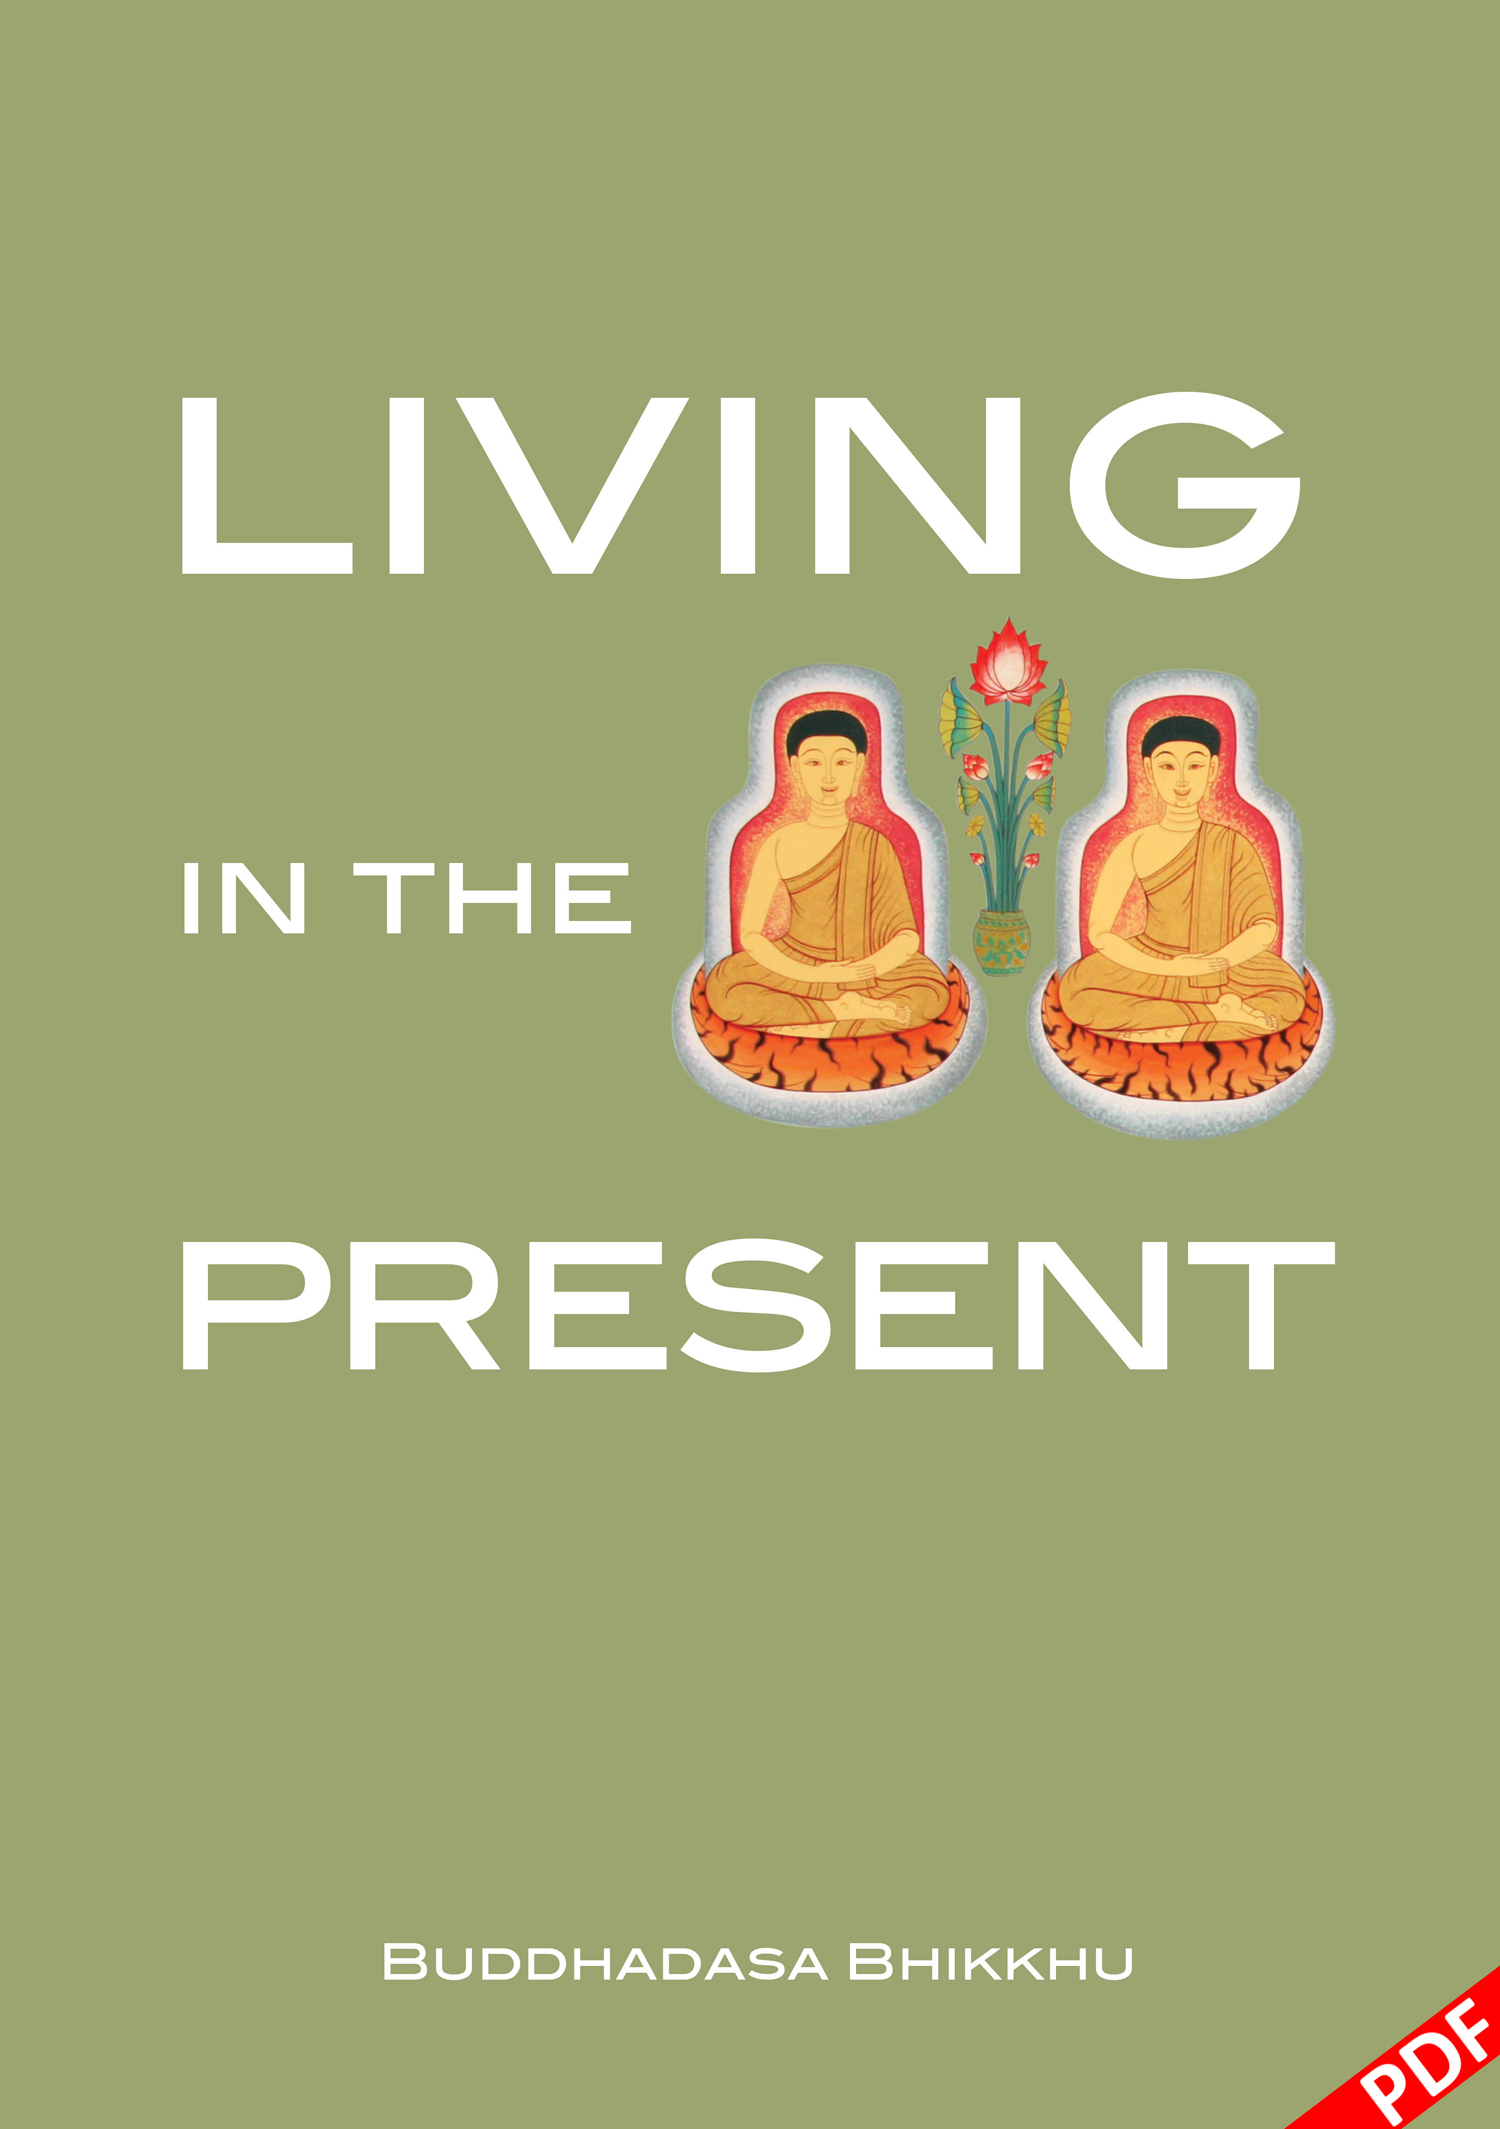 Living in the present pdf